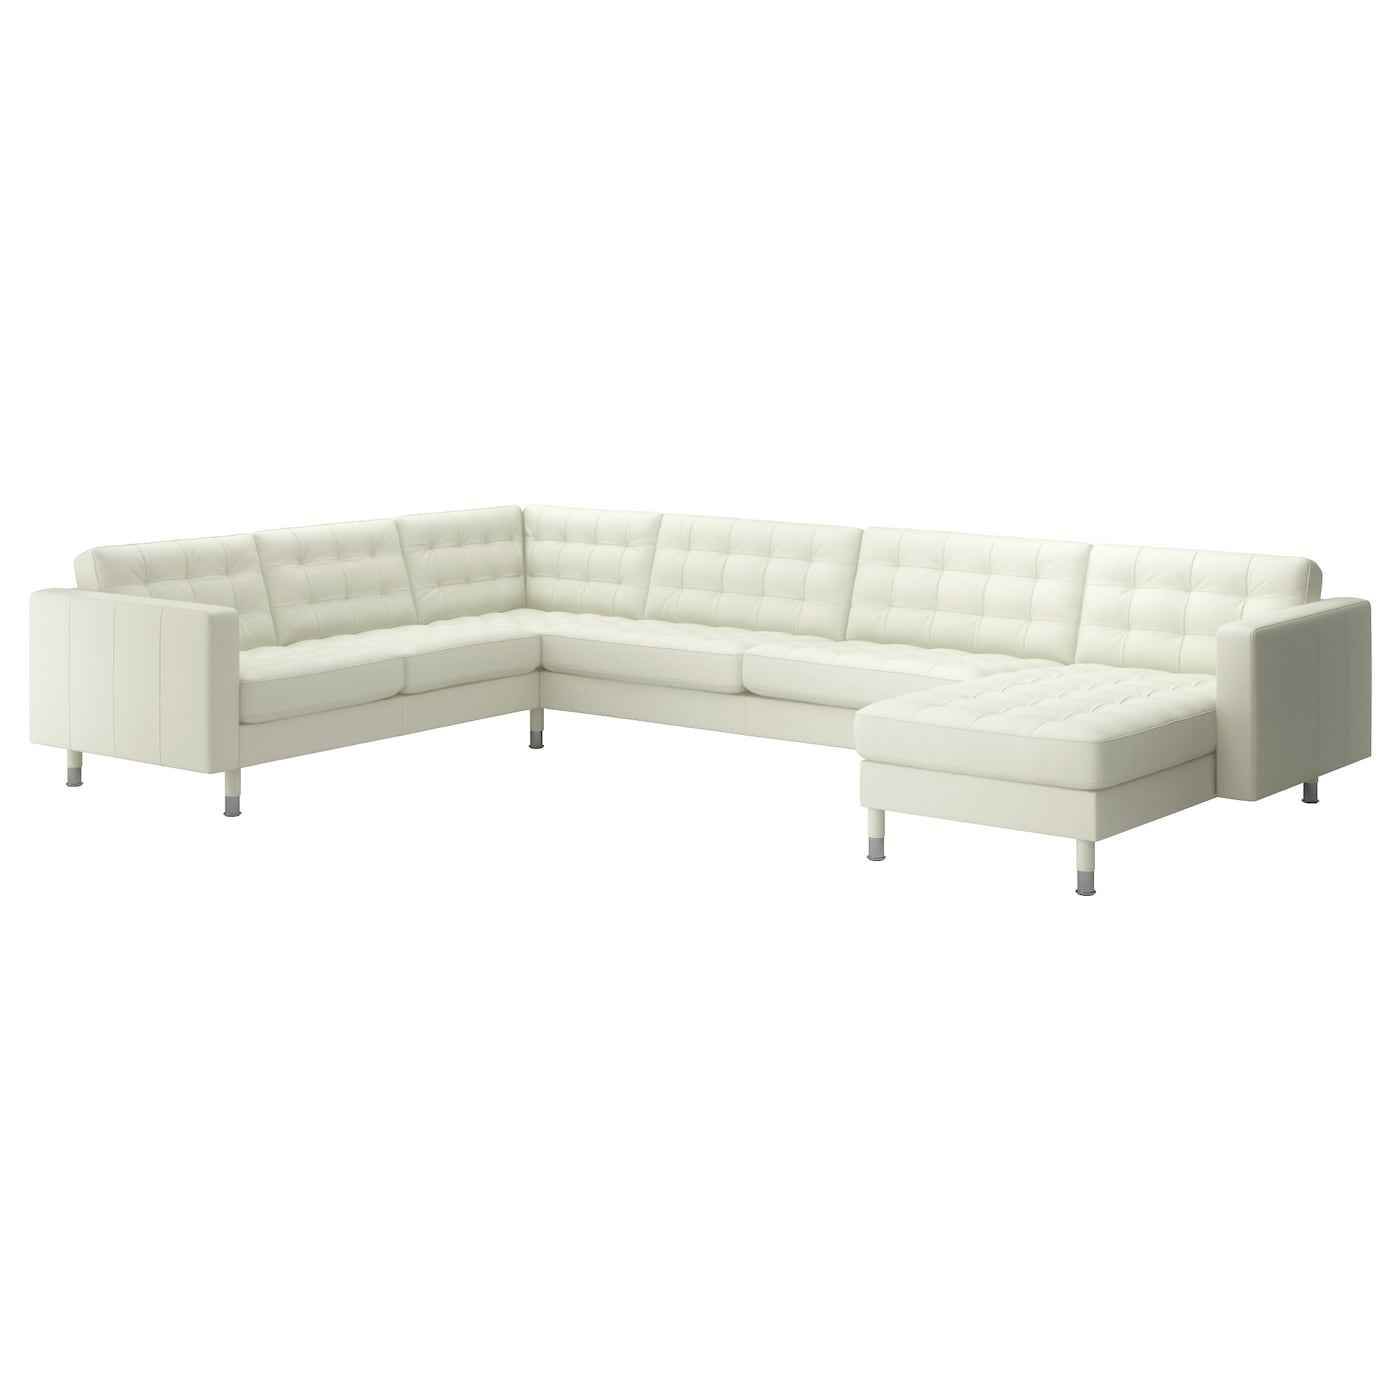 landskrona corner sofa 23 32 and chaise longue grann bomstad white metal ikea. Black Bedroom Furniture Sets. Home Design Ideas